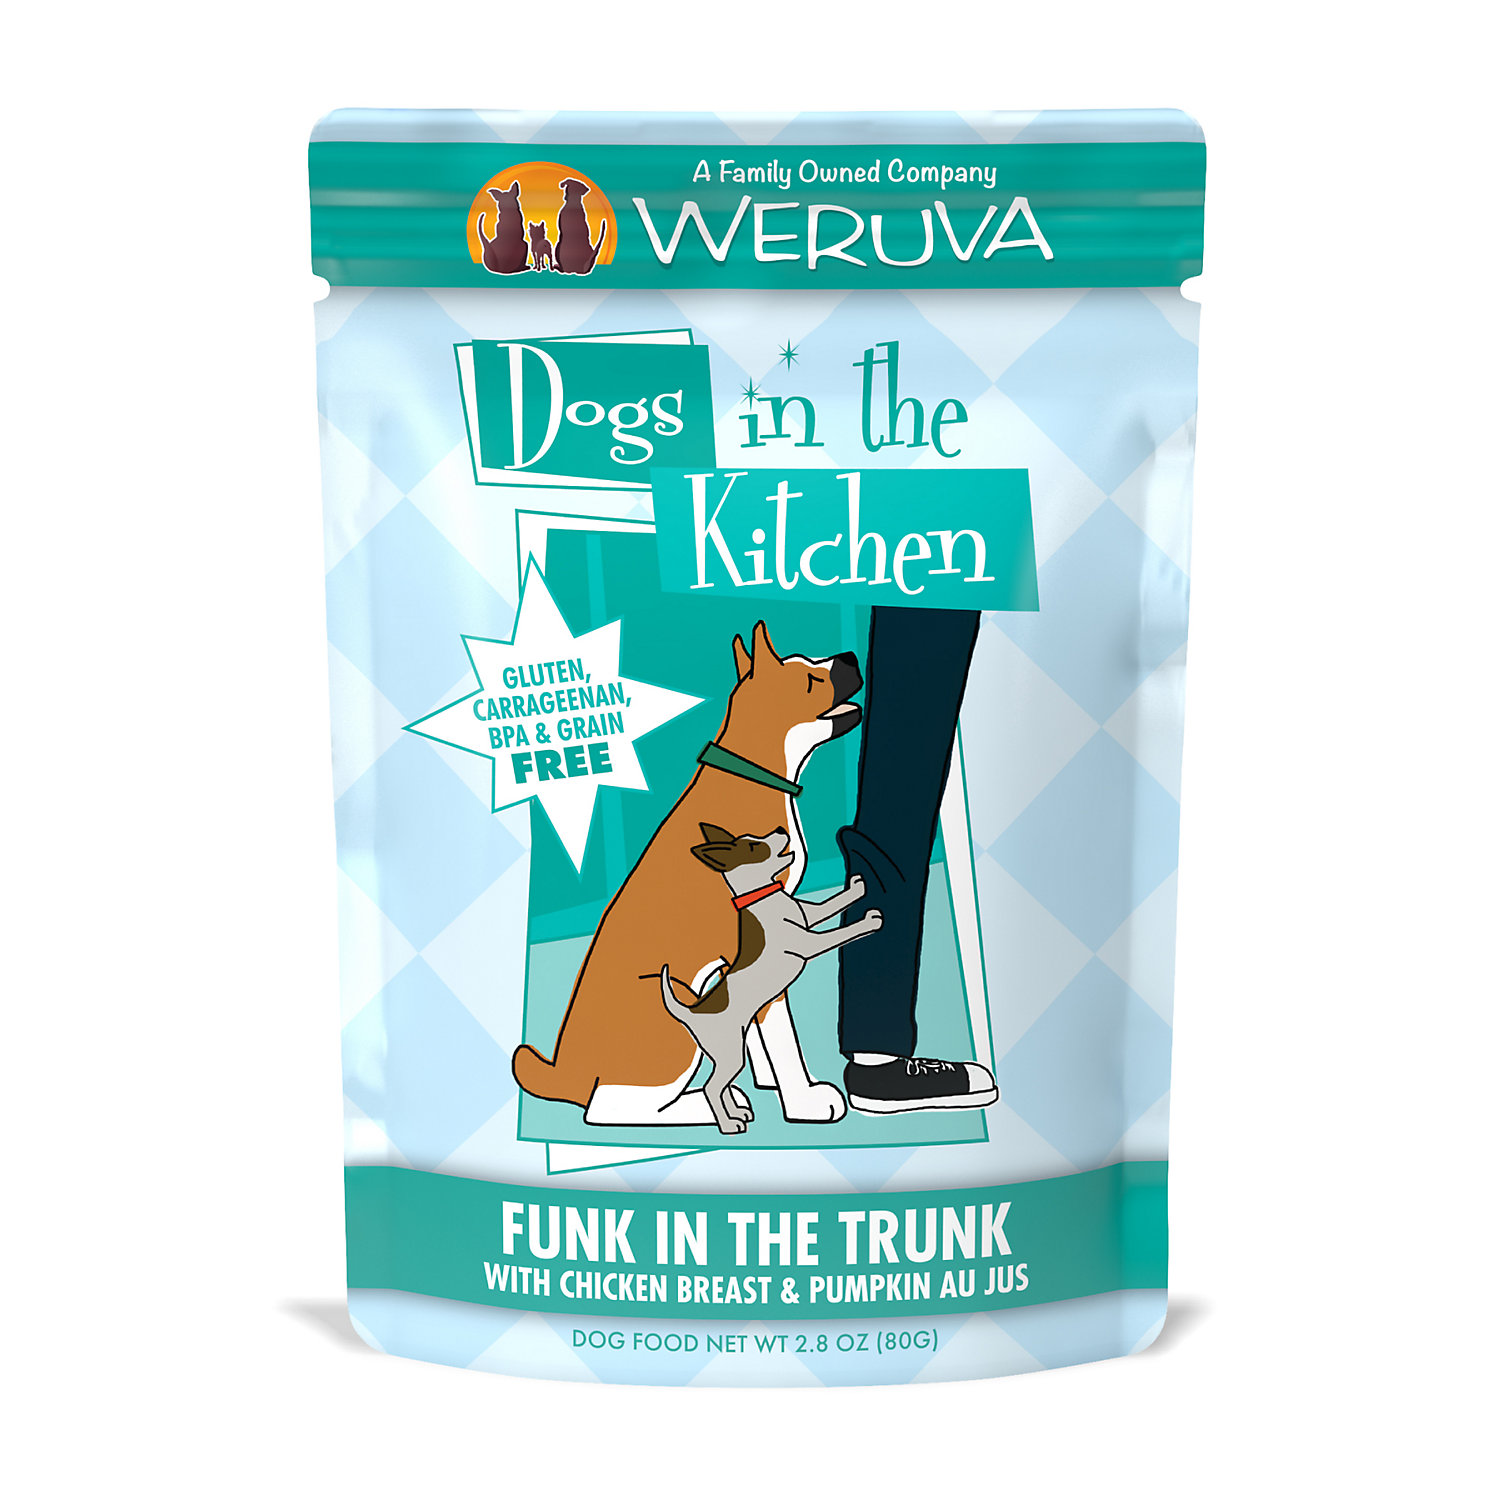 Dogs in the Kitchen Funk in the Trunk with Chicken Breast & Pumpkin Au Jus Wet Dog Food Pouches